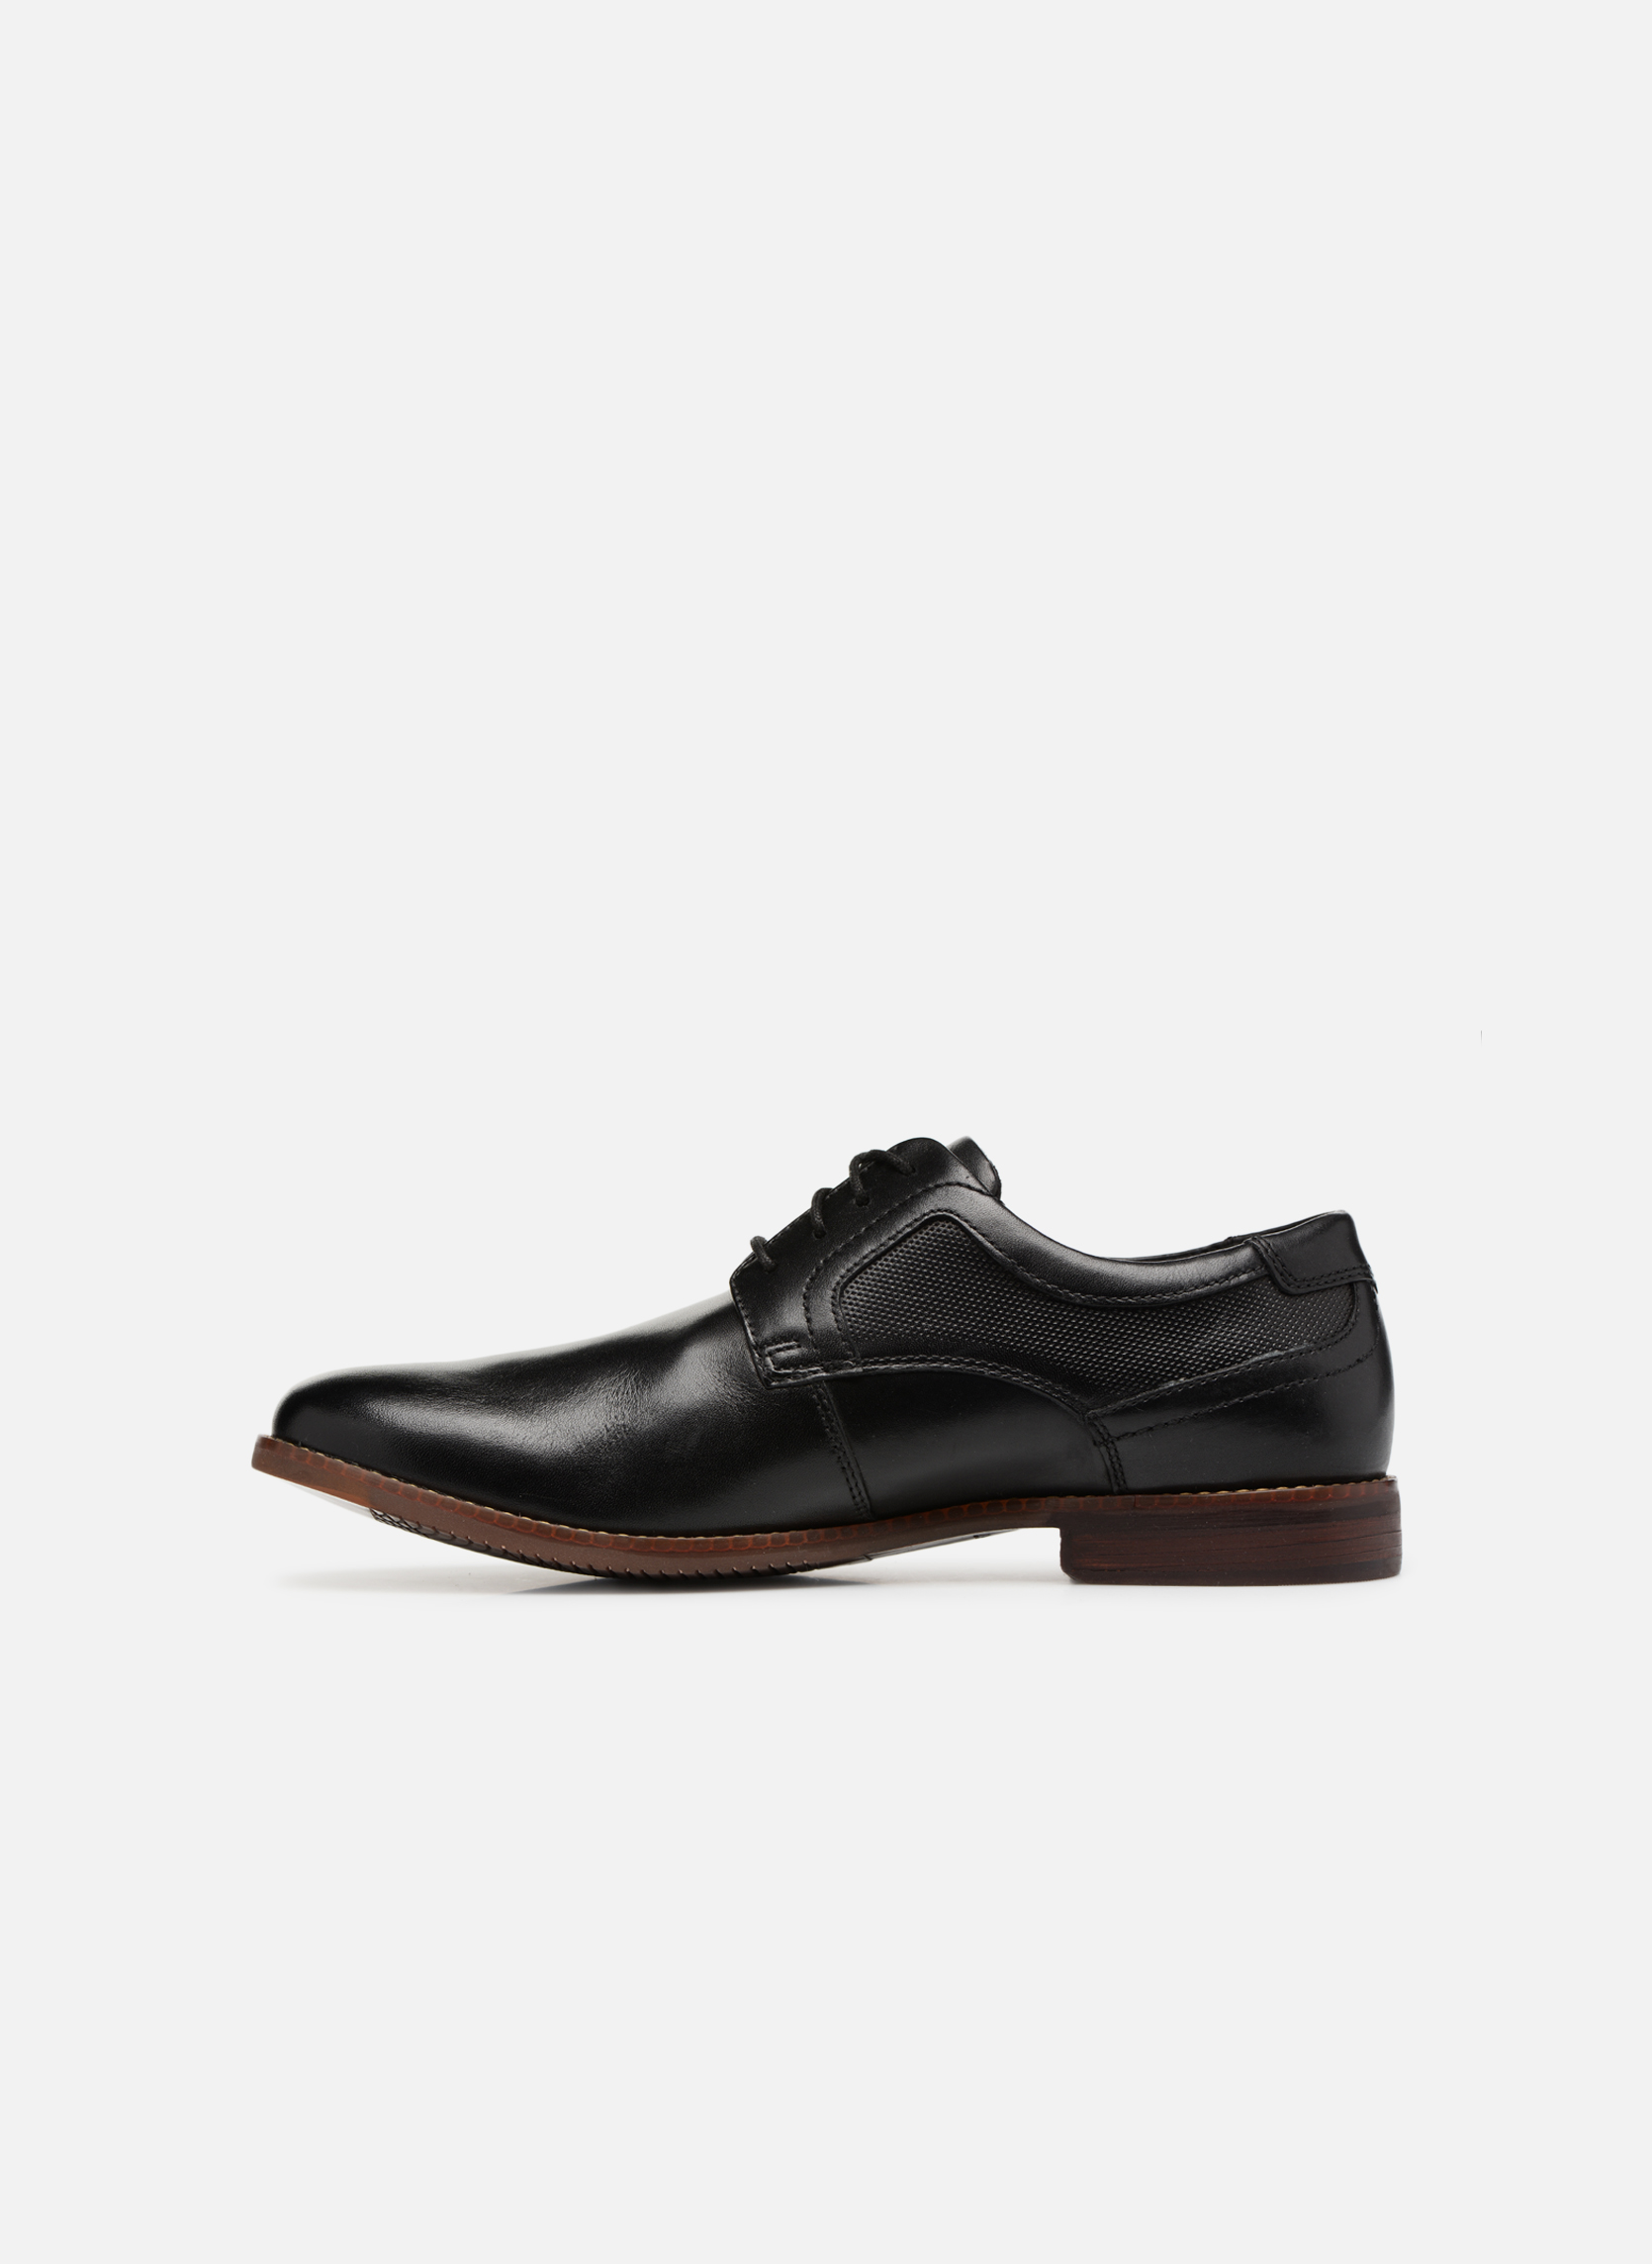 SP Perf Plain Toe Black